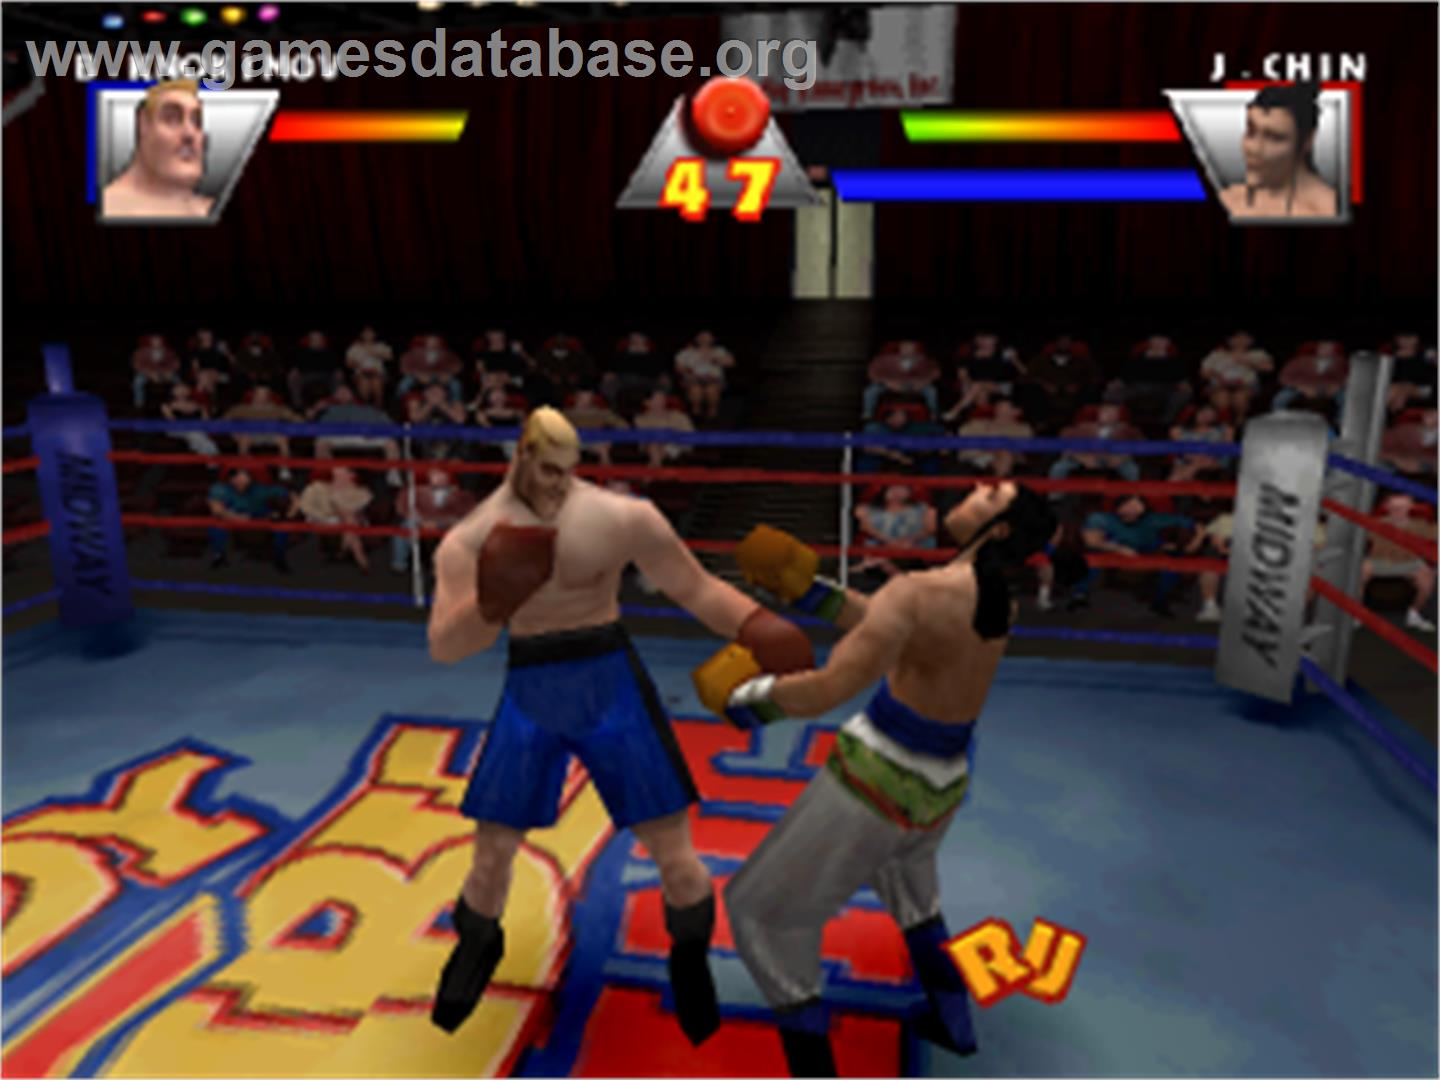 Ready 2 Rumble Boxing - Sony Playstation - Games Database